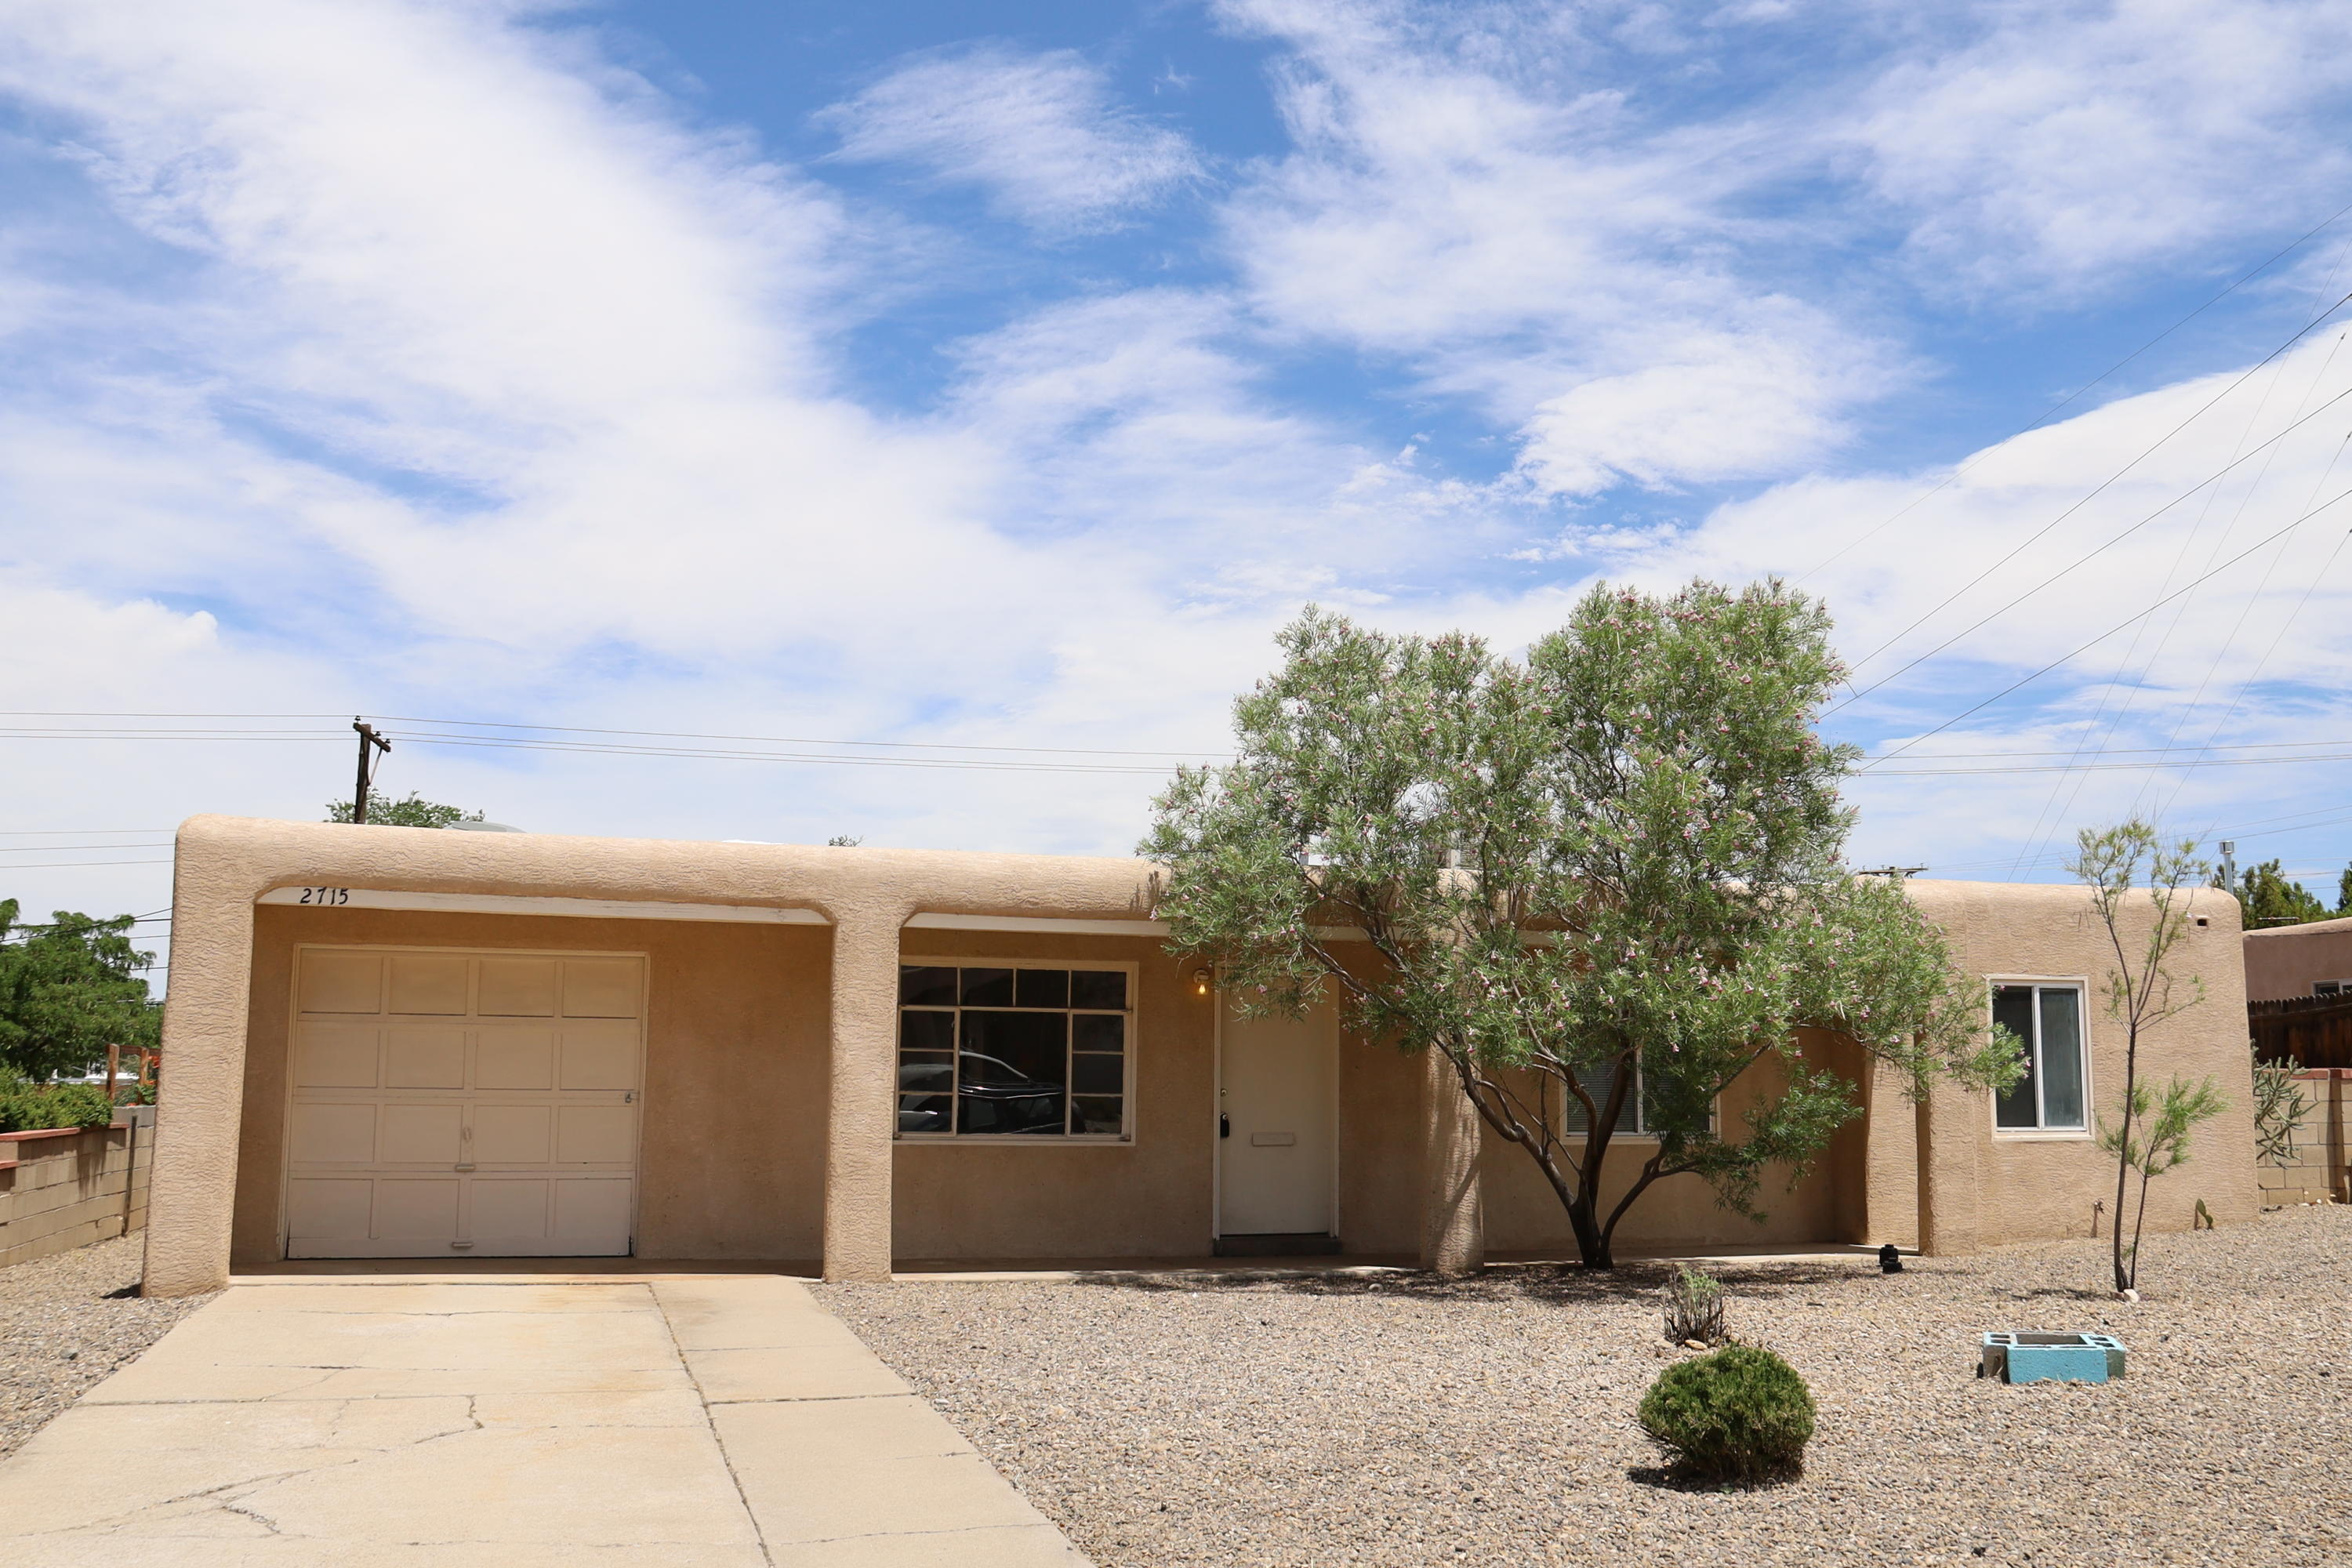 Diamond in the rough.  Great location with good access to UNM and shopping. Garage in Backyard can be accessed from Indian School Rd. Garage has ample room for storage, work shop or hobby room.